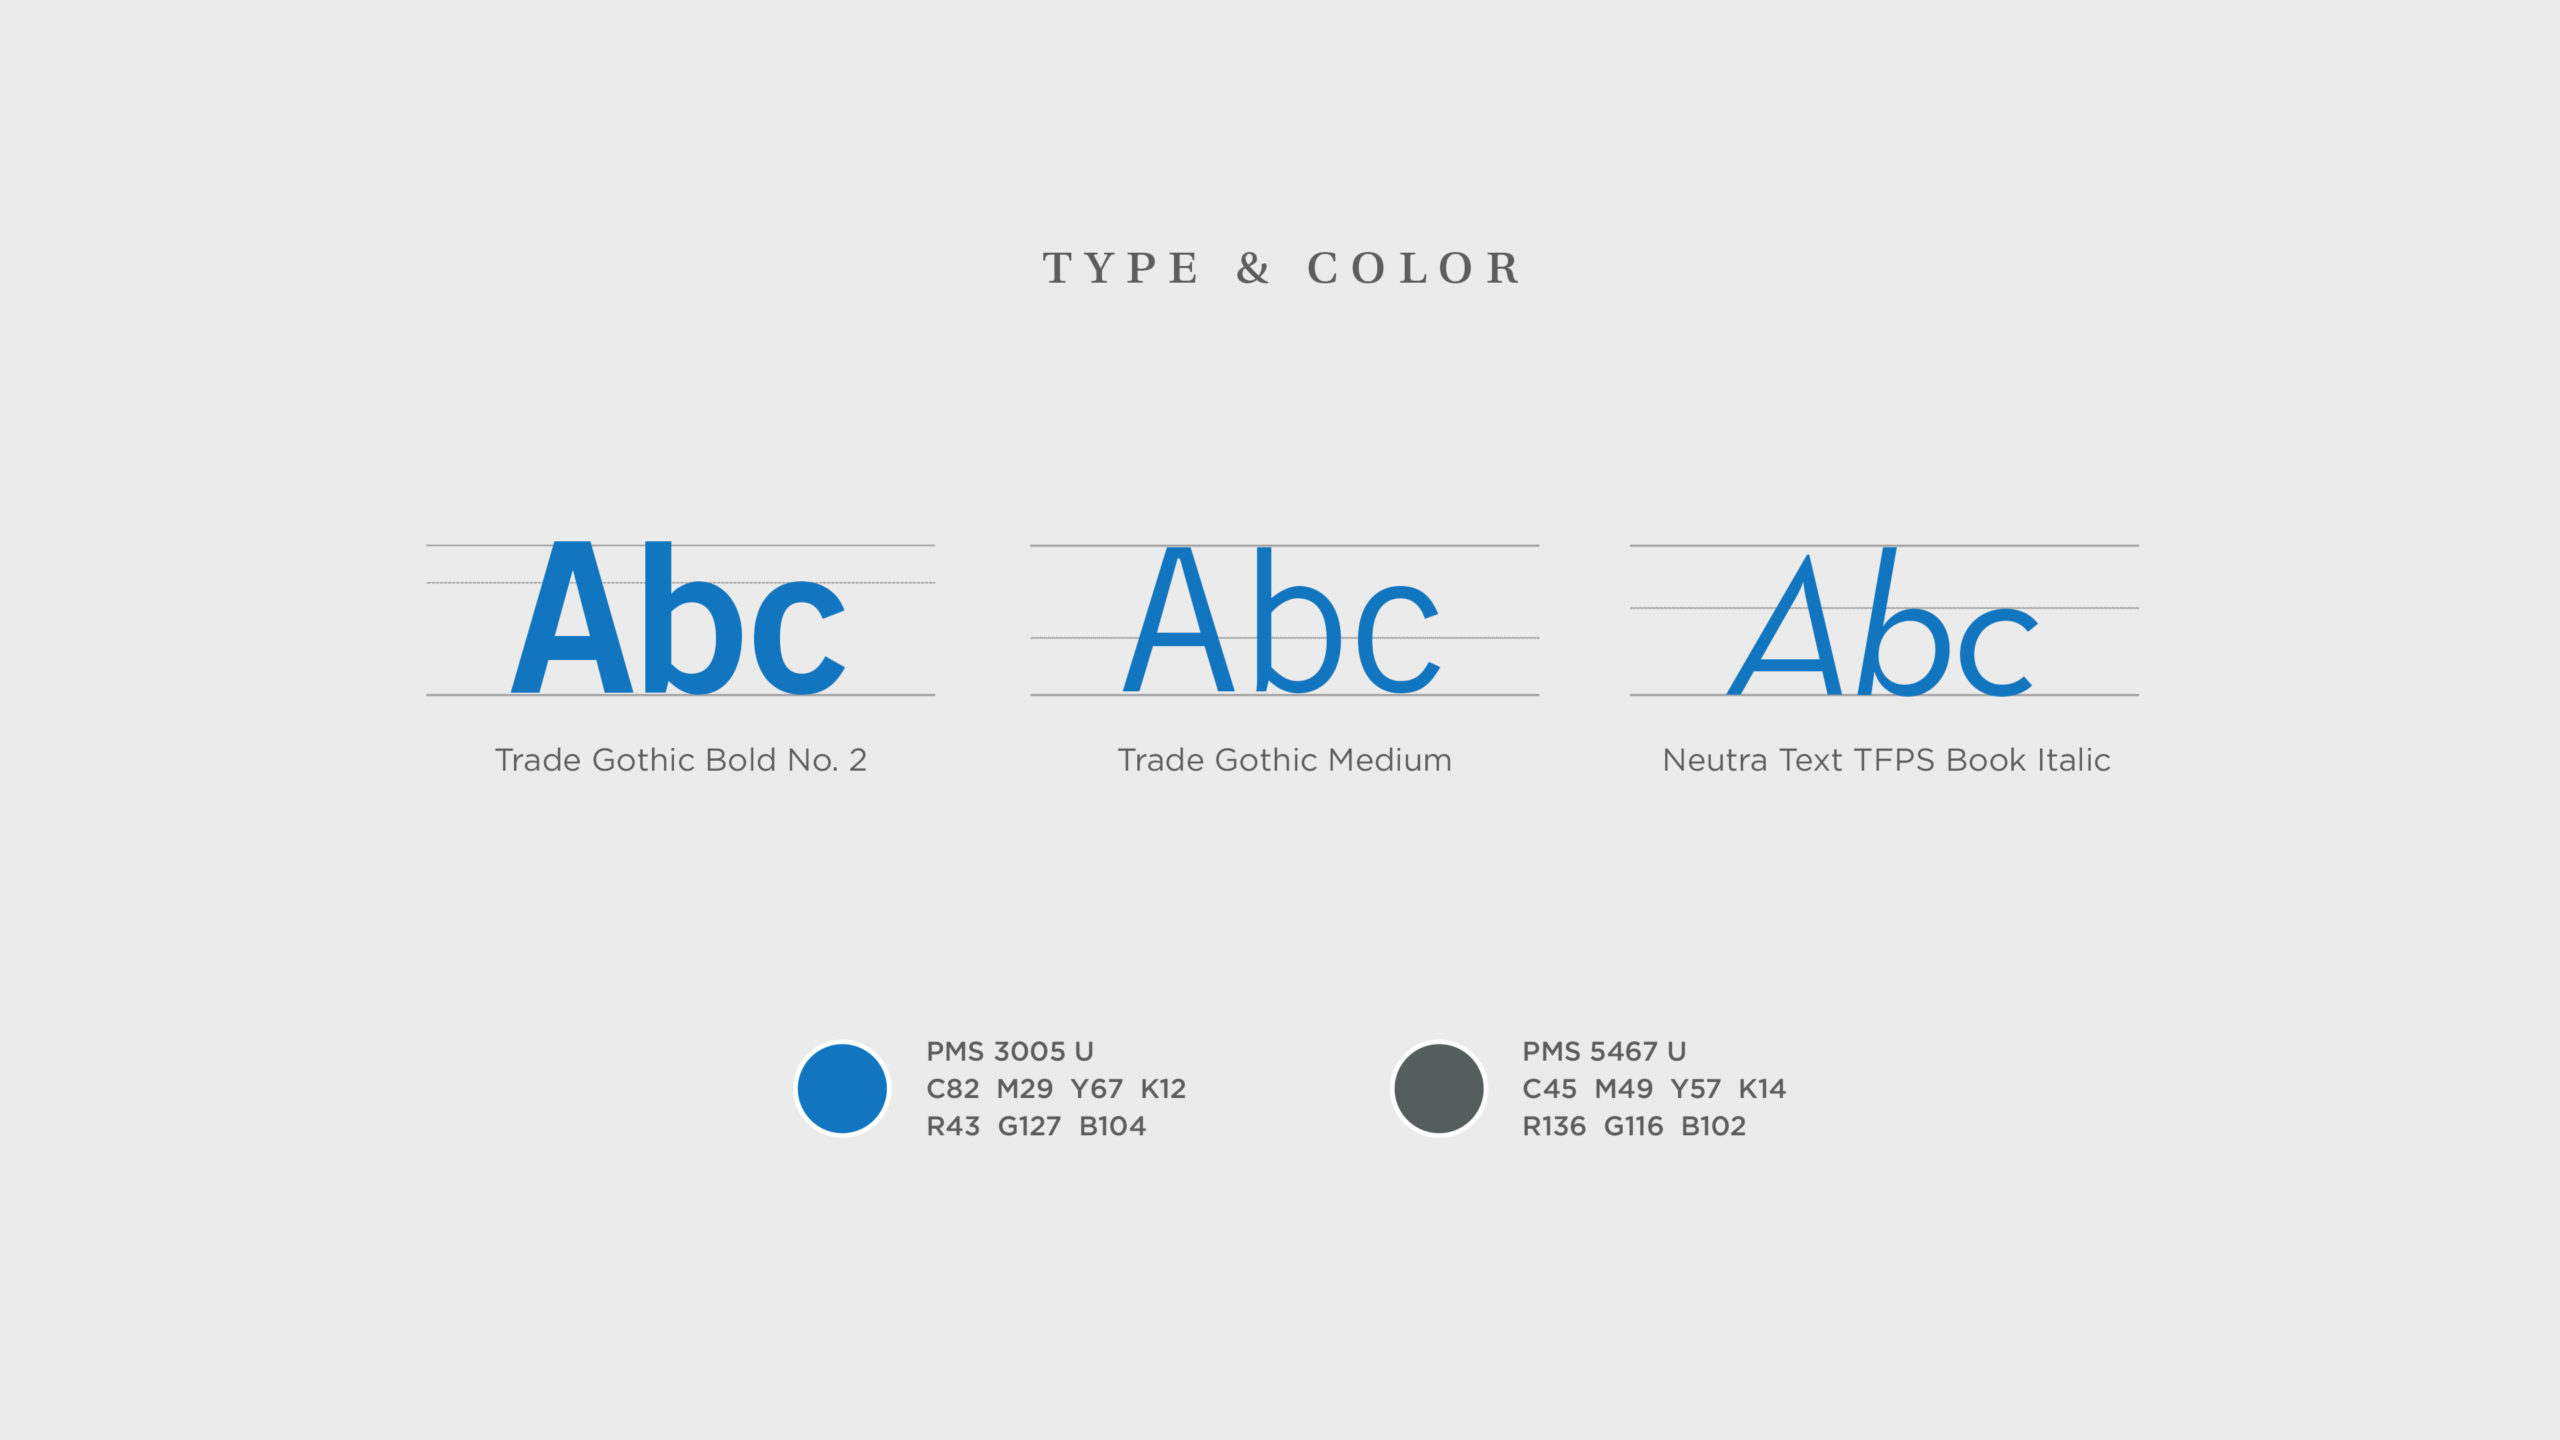 type and color specifications